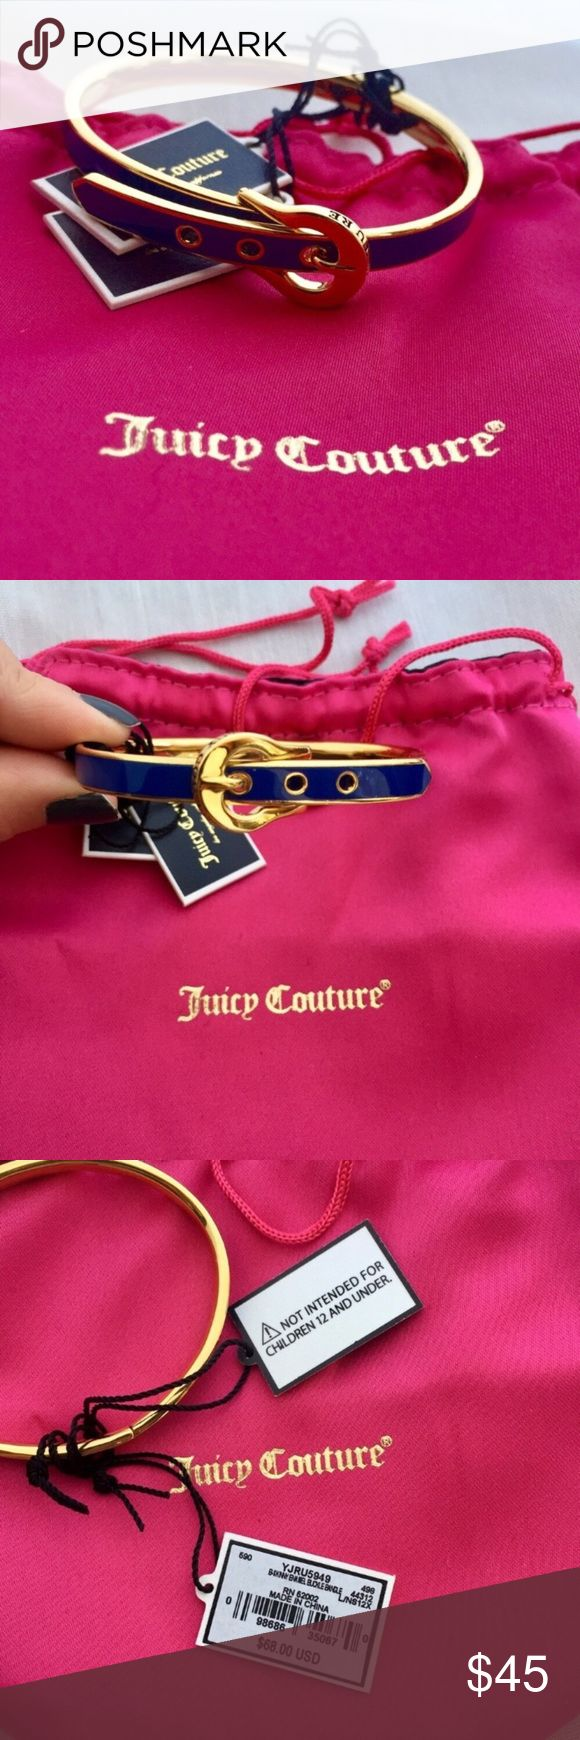 NWT Juicy Couture Enamel Bracelet Authentic Bracelet is in navy enamel color with gold tone trim. The belt buckle design allows for 3 adjustable sizes. Comes with original dust bag - small stain on back of the dust bag. Retails for $68 Purchased directly from Juicy Couture's website. Juicy Couture Jewelry Bracelets